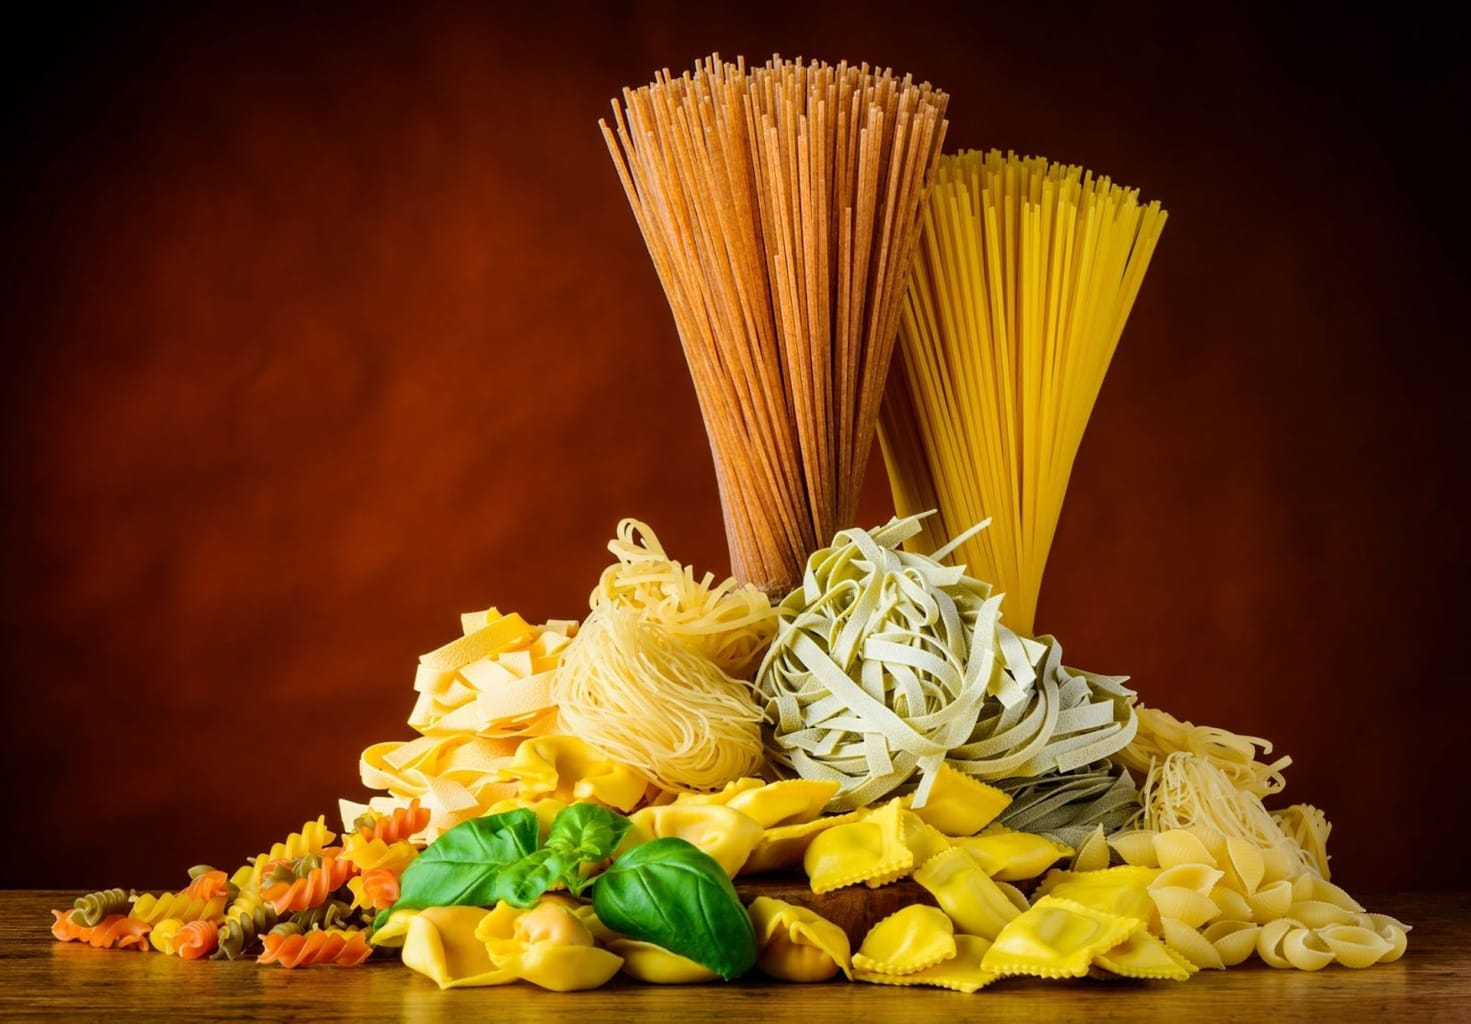 See all the kinds of pasta at the National Pasta Museum